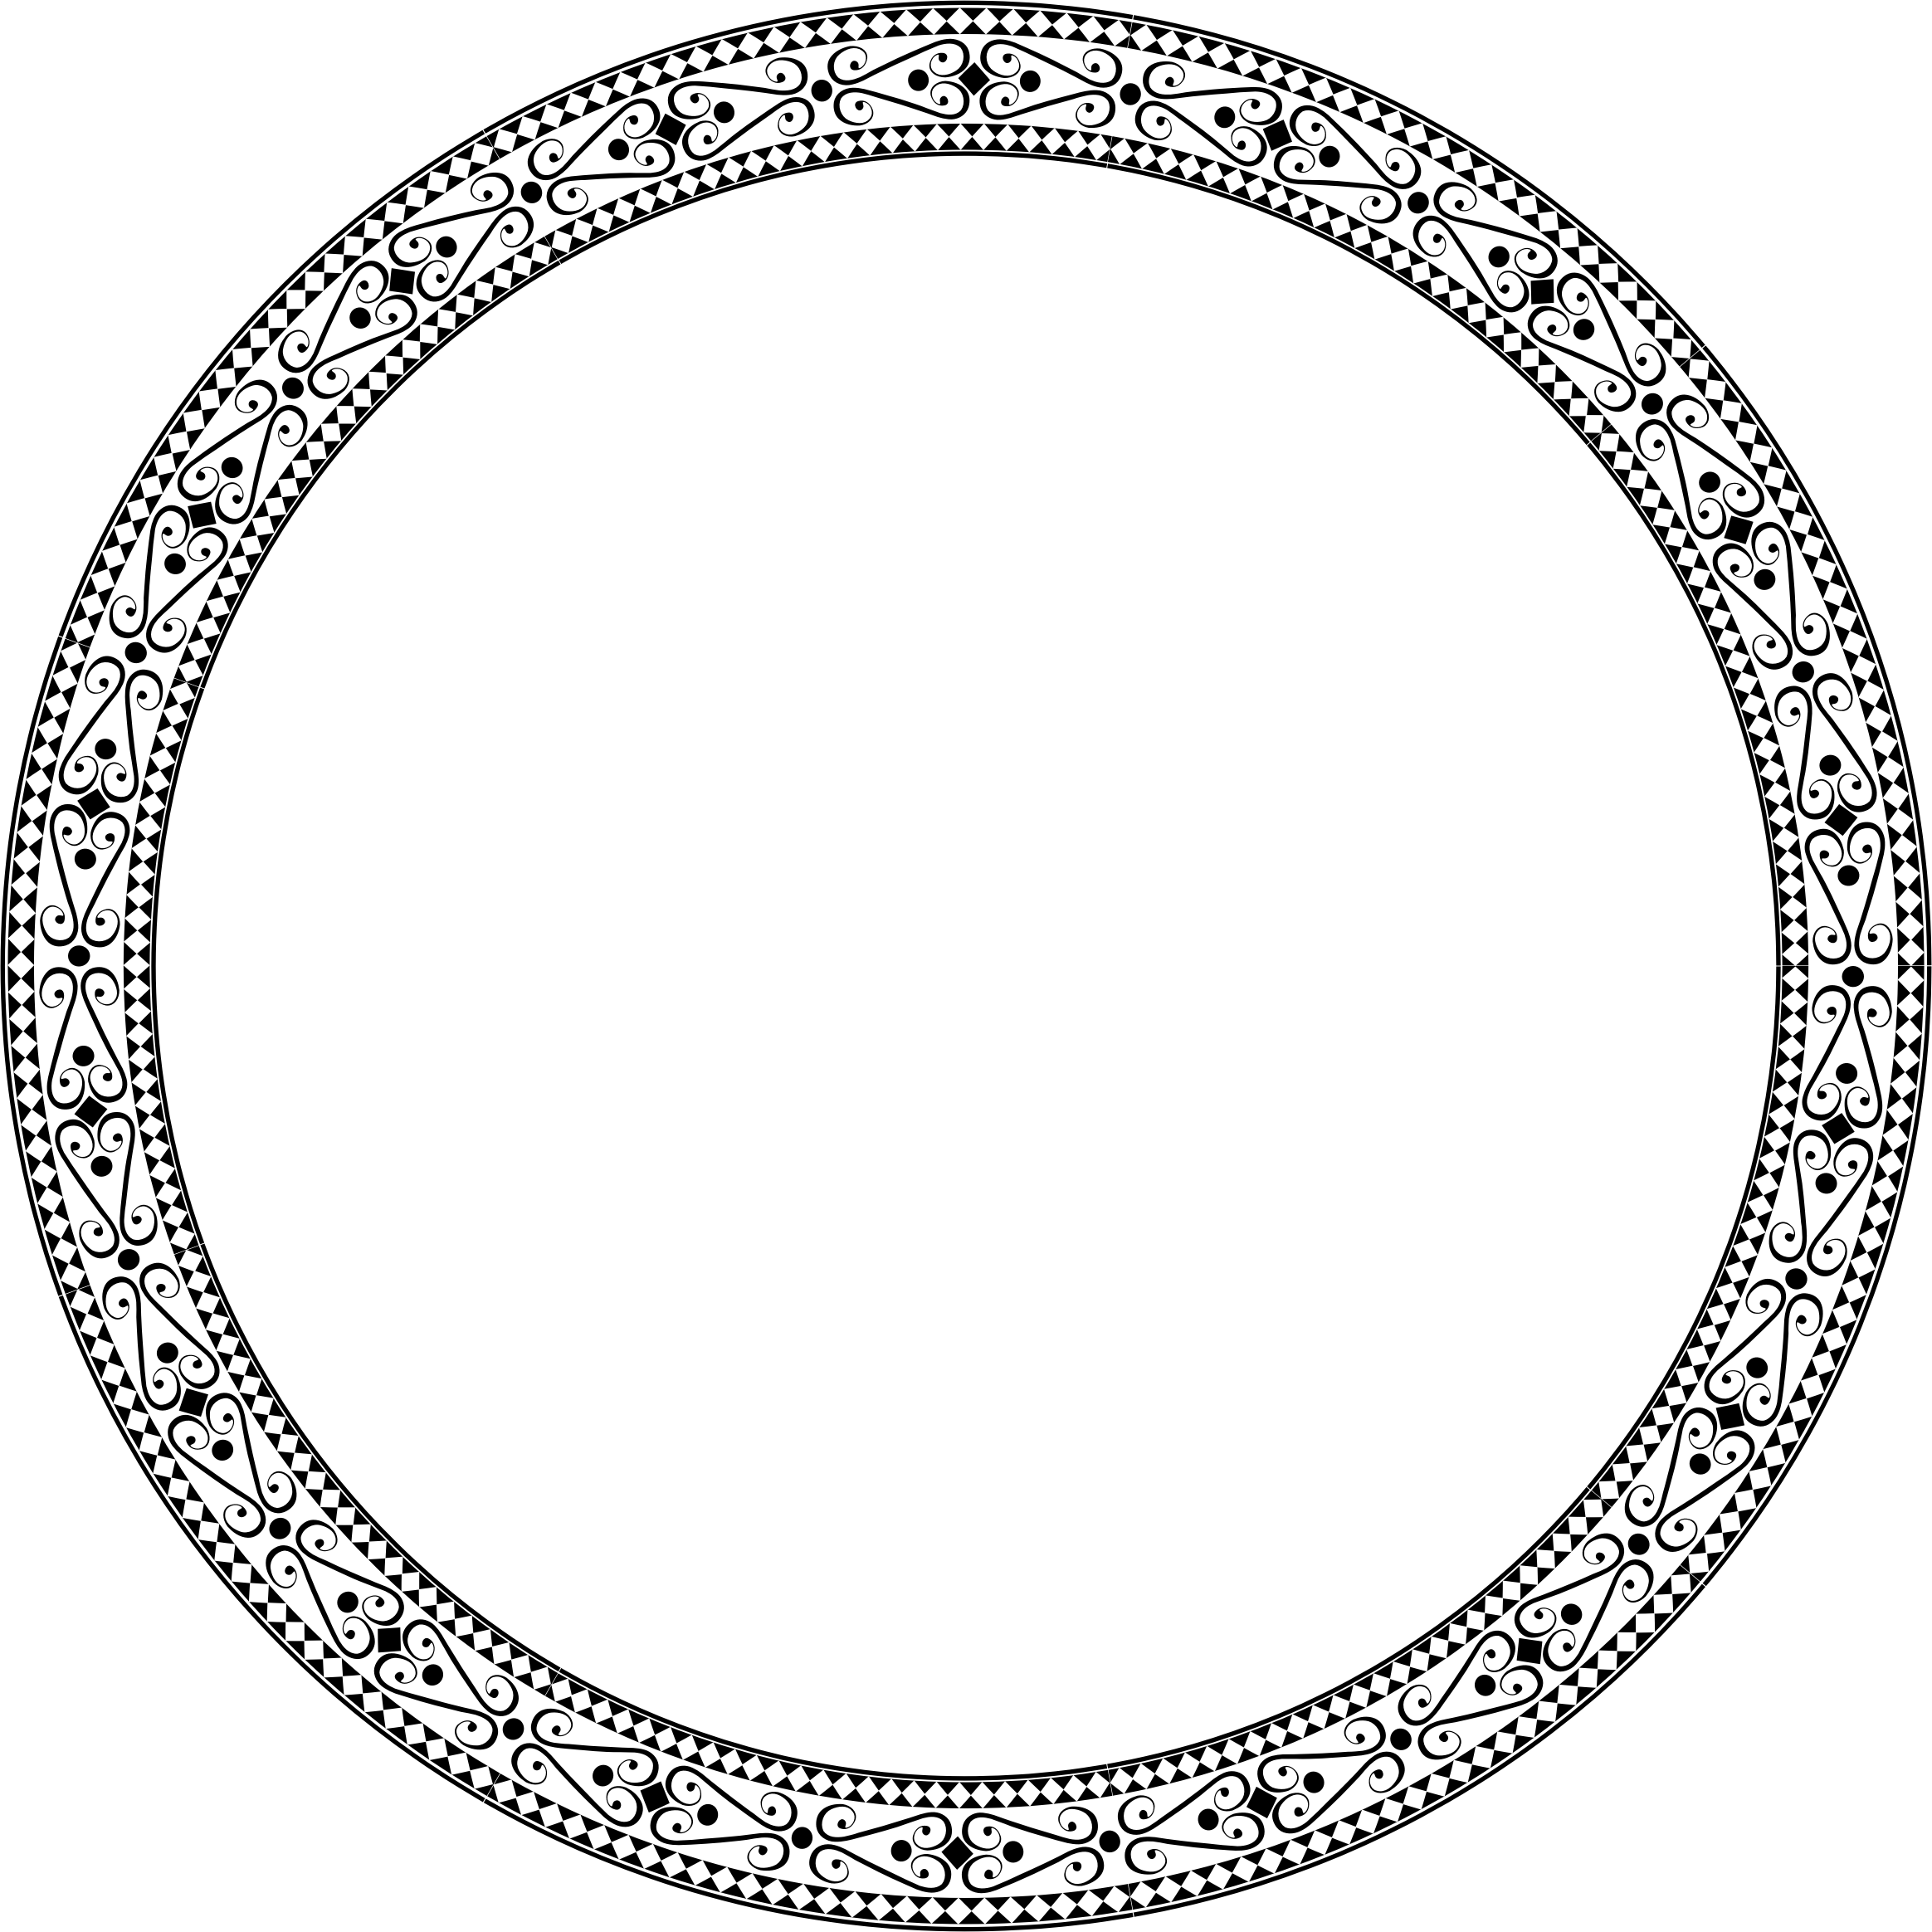 Decorative circle png. Ornamental round frame icons